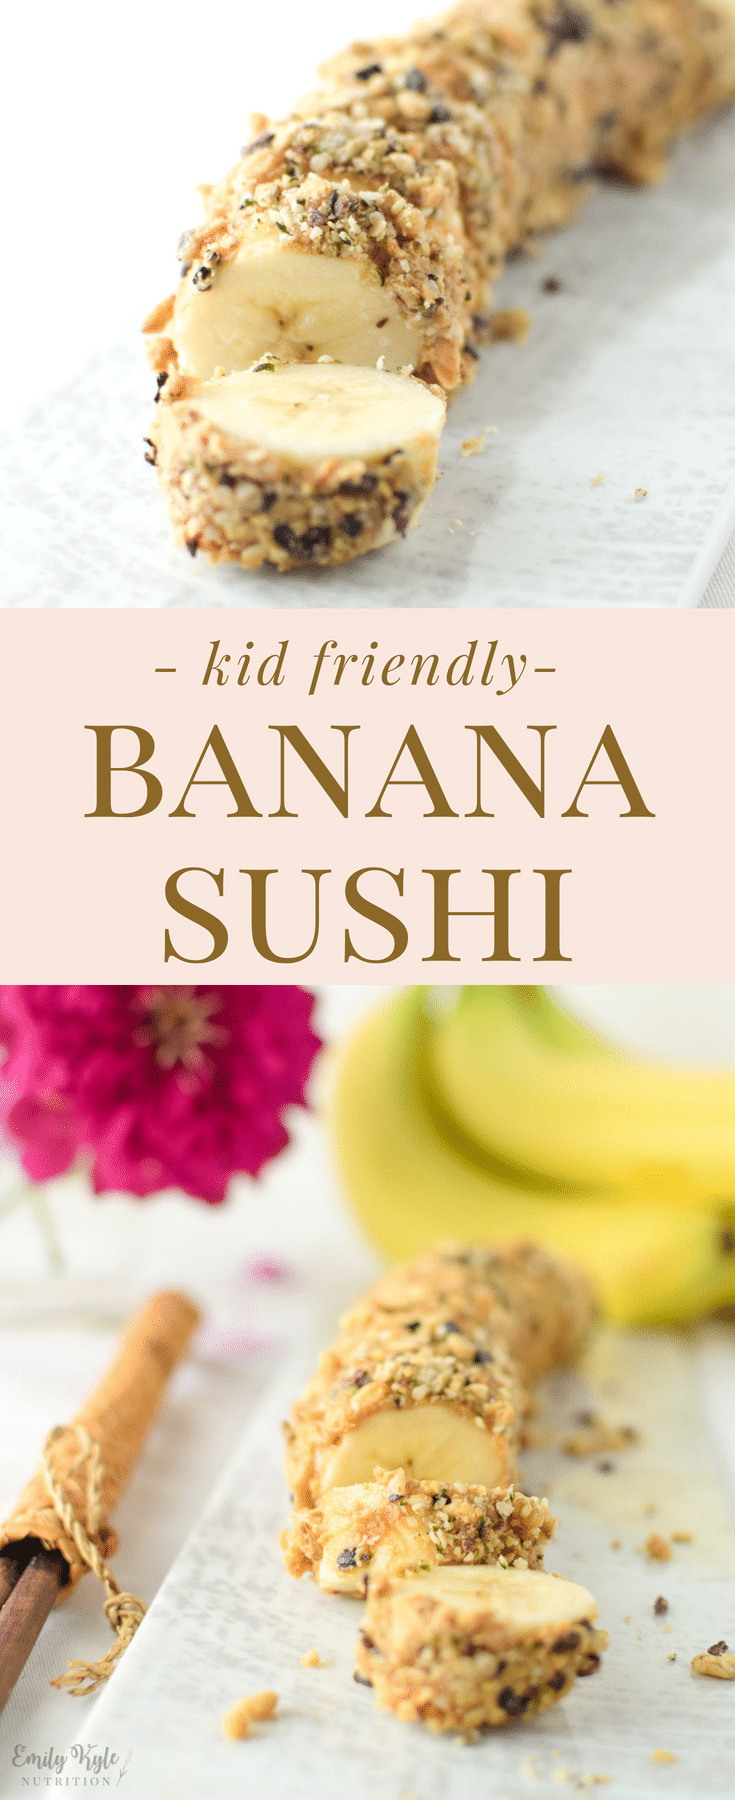 This easy Banana Sushi is a fun, kid friendly treat is a nutritious and delicious way to get your little one involved in the kitchen & learning how to cook.